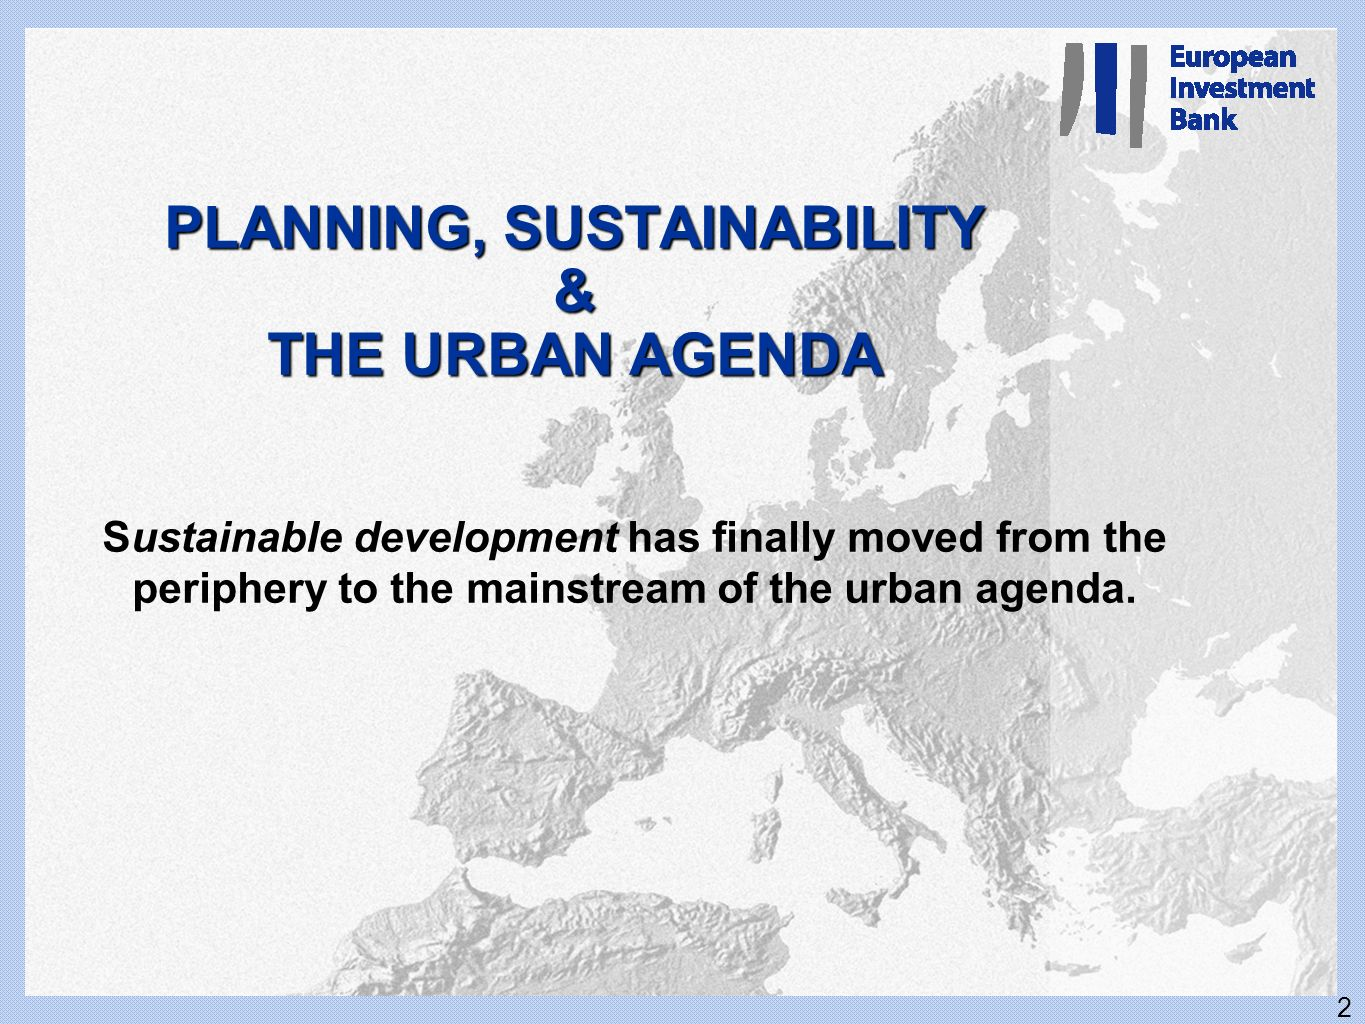 PLANNING, SUSTAINABILITY & THE URBAN AGENDA